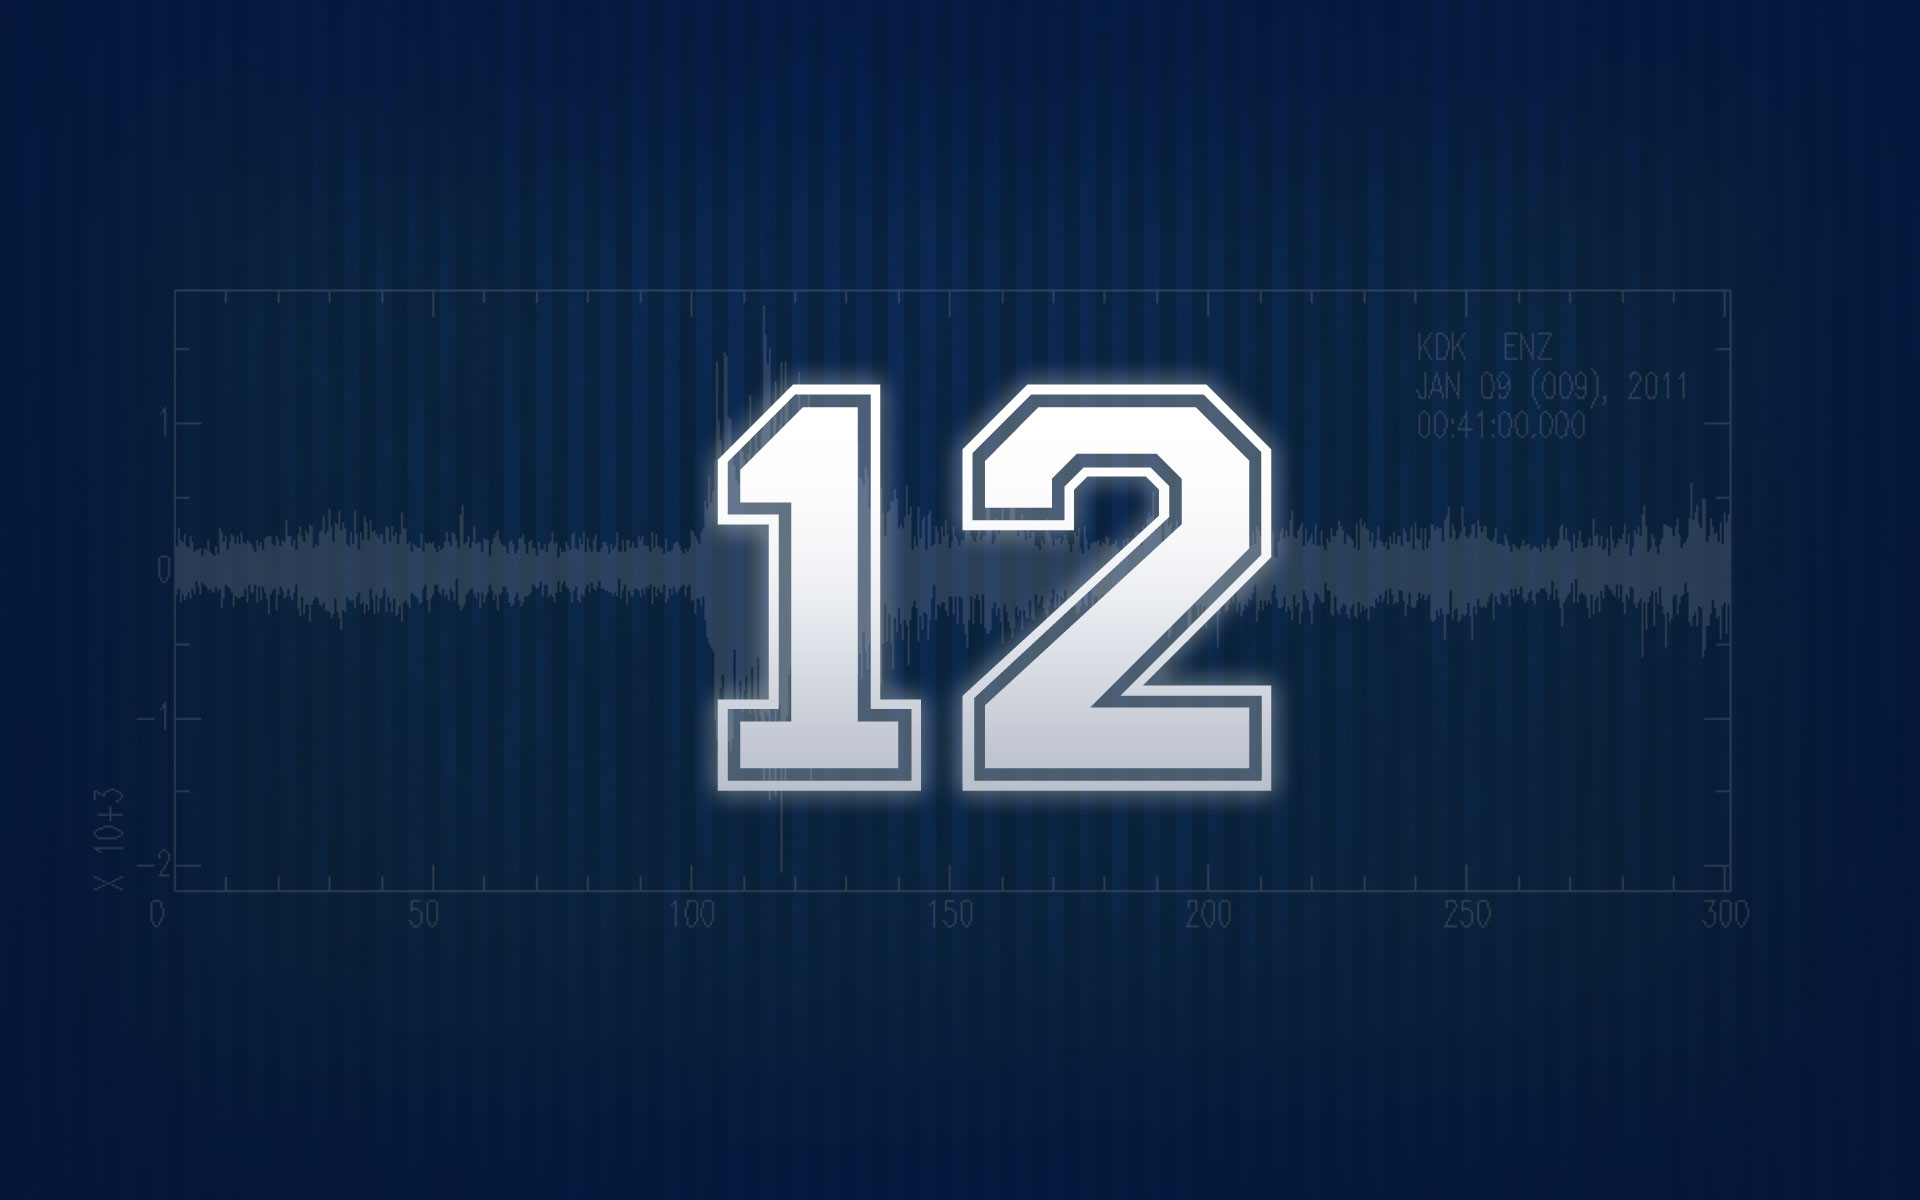 Free Download Seahawks 12th Man Wallpaper 454903 1920x1200 For